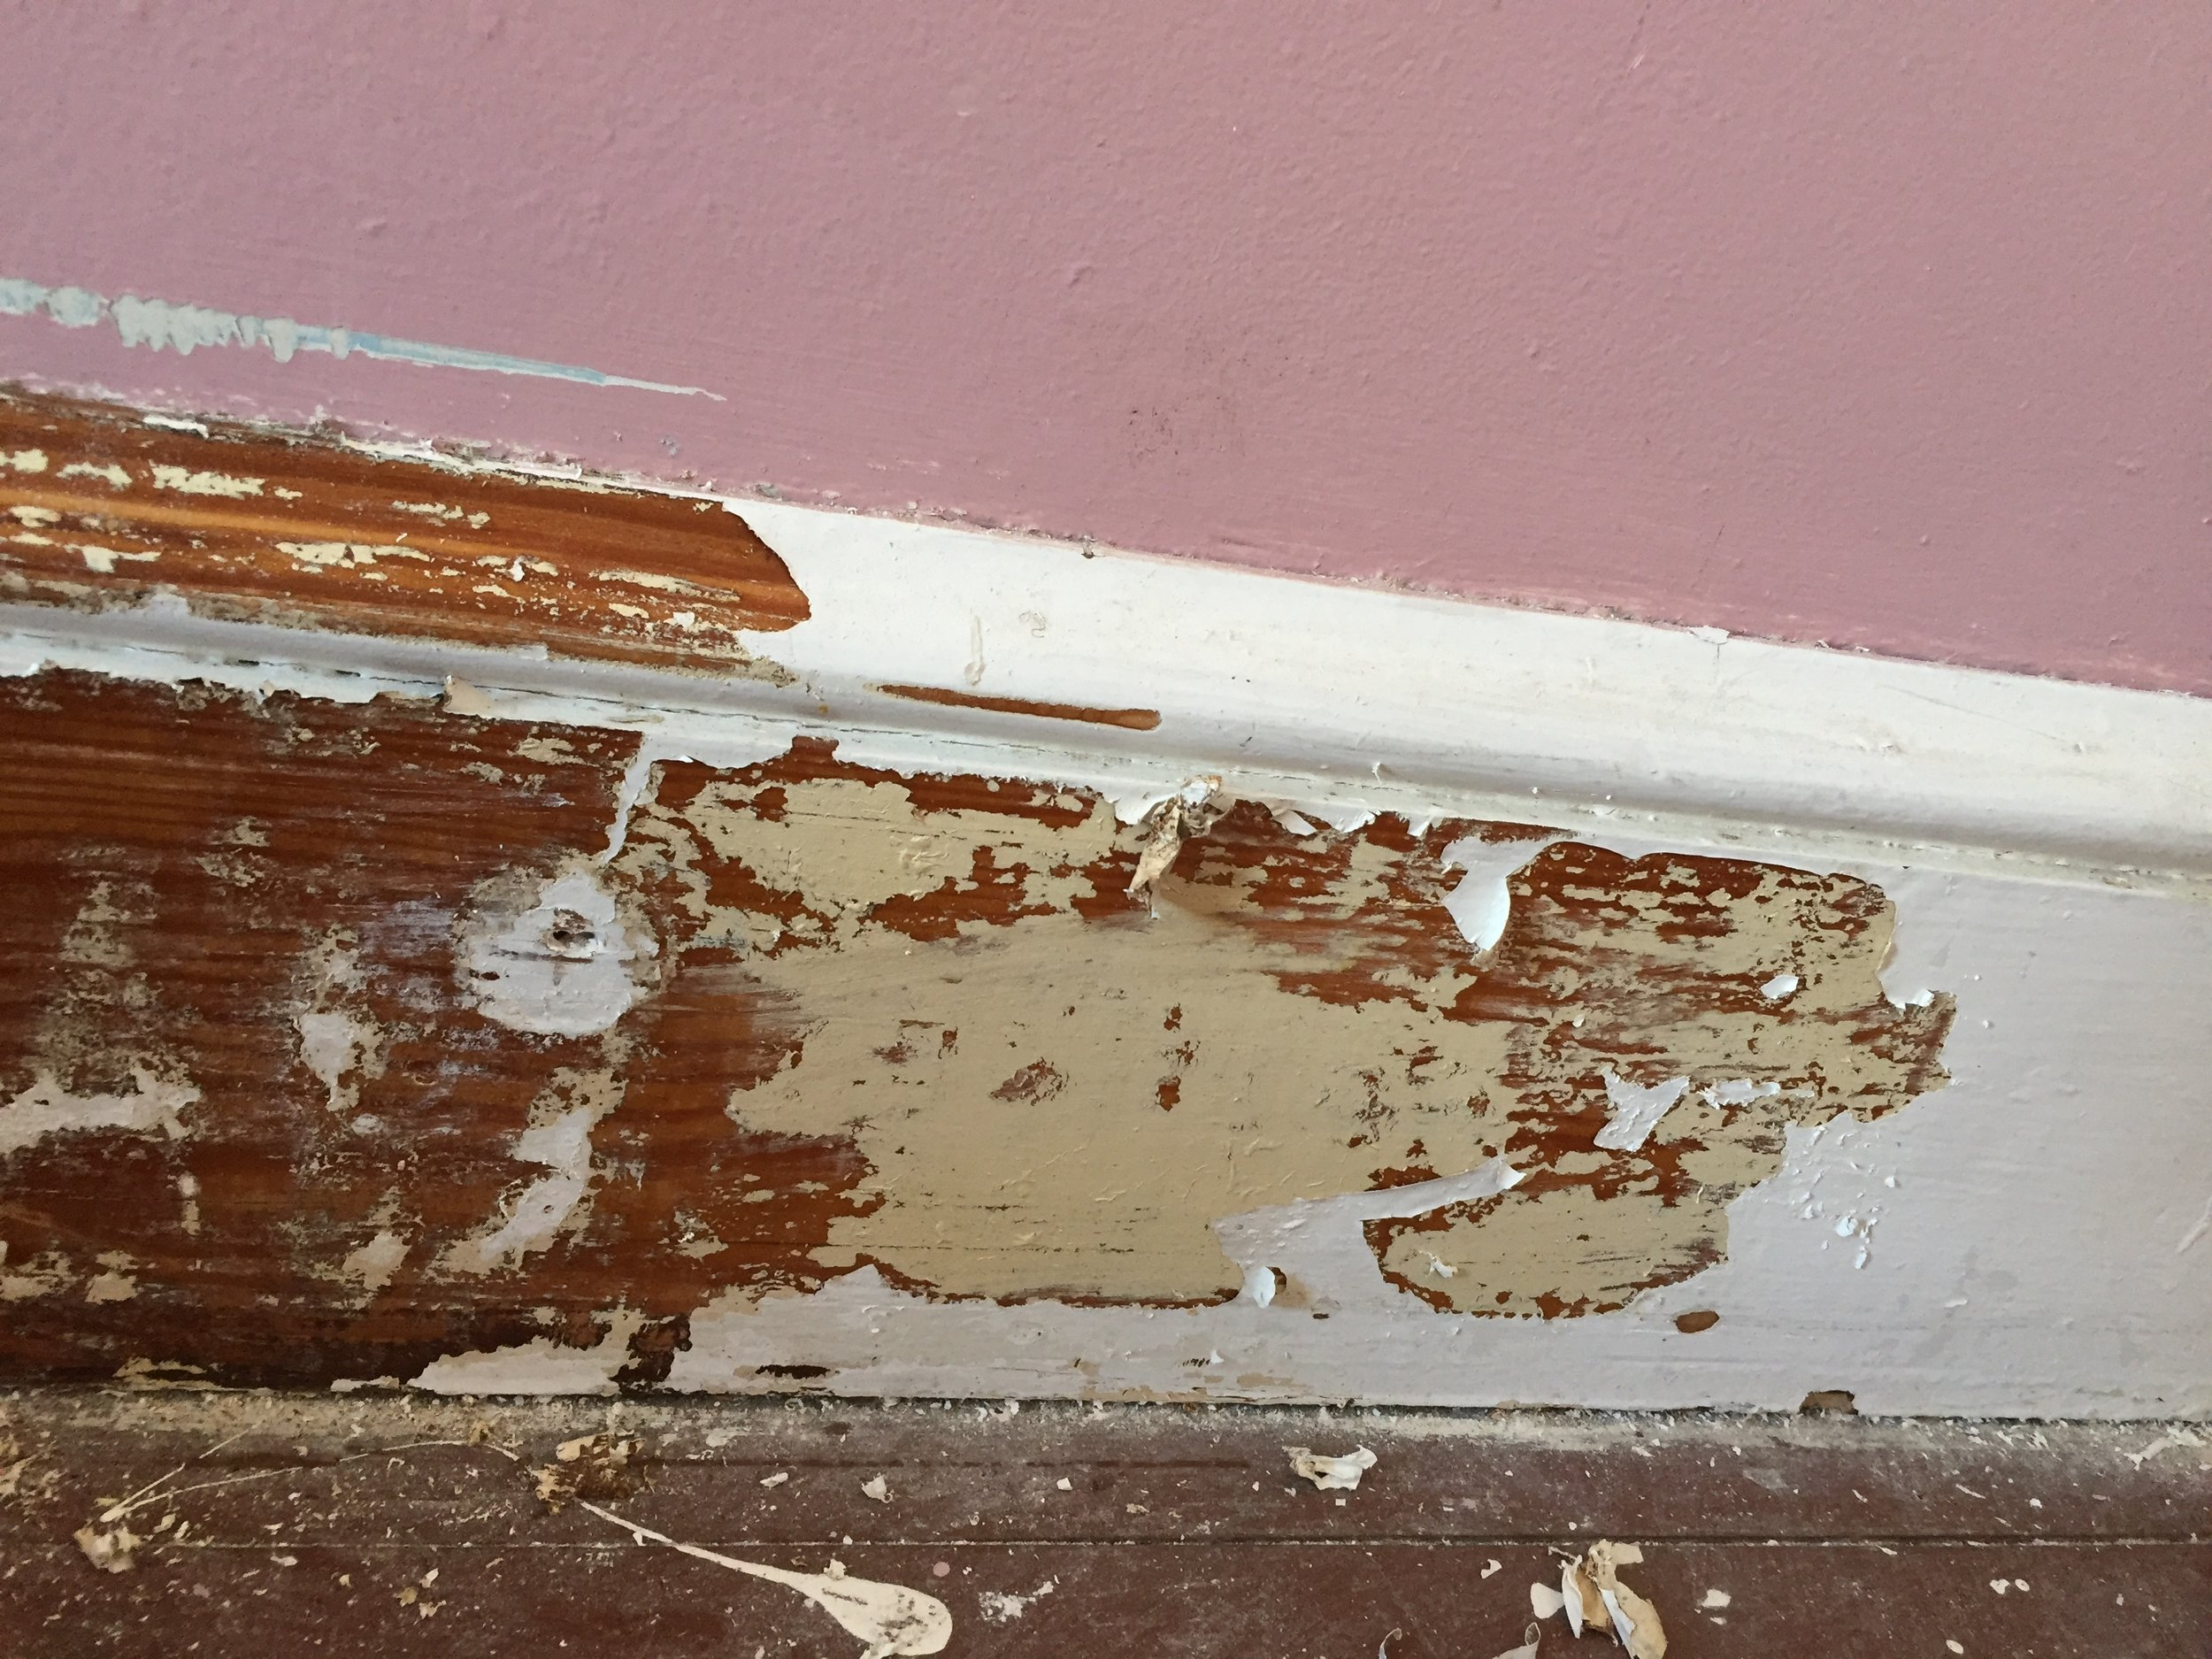 The top layer is modern oil-based paint. The middle layer is lead paint. The last layer is the original shellac finish.